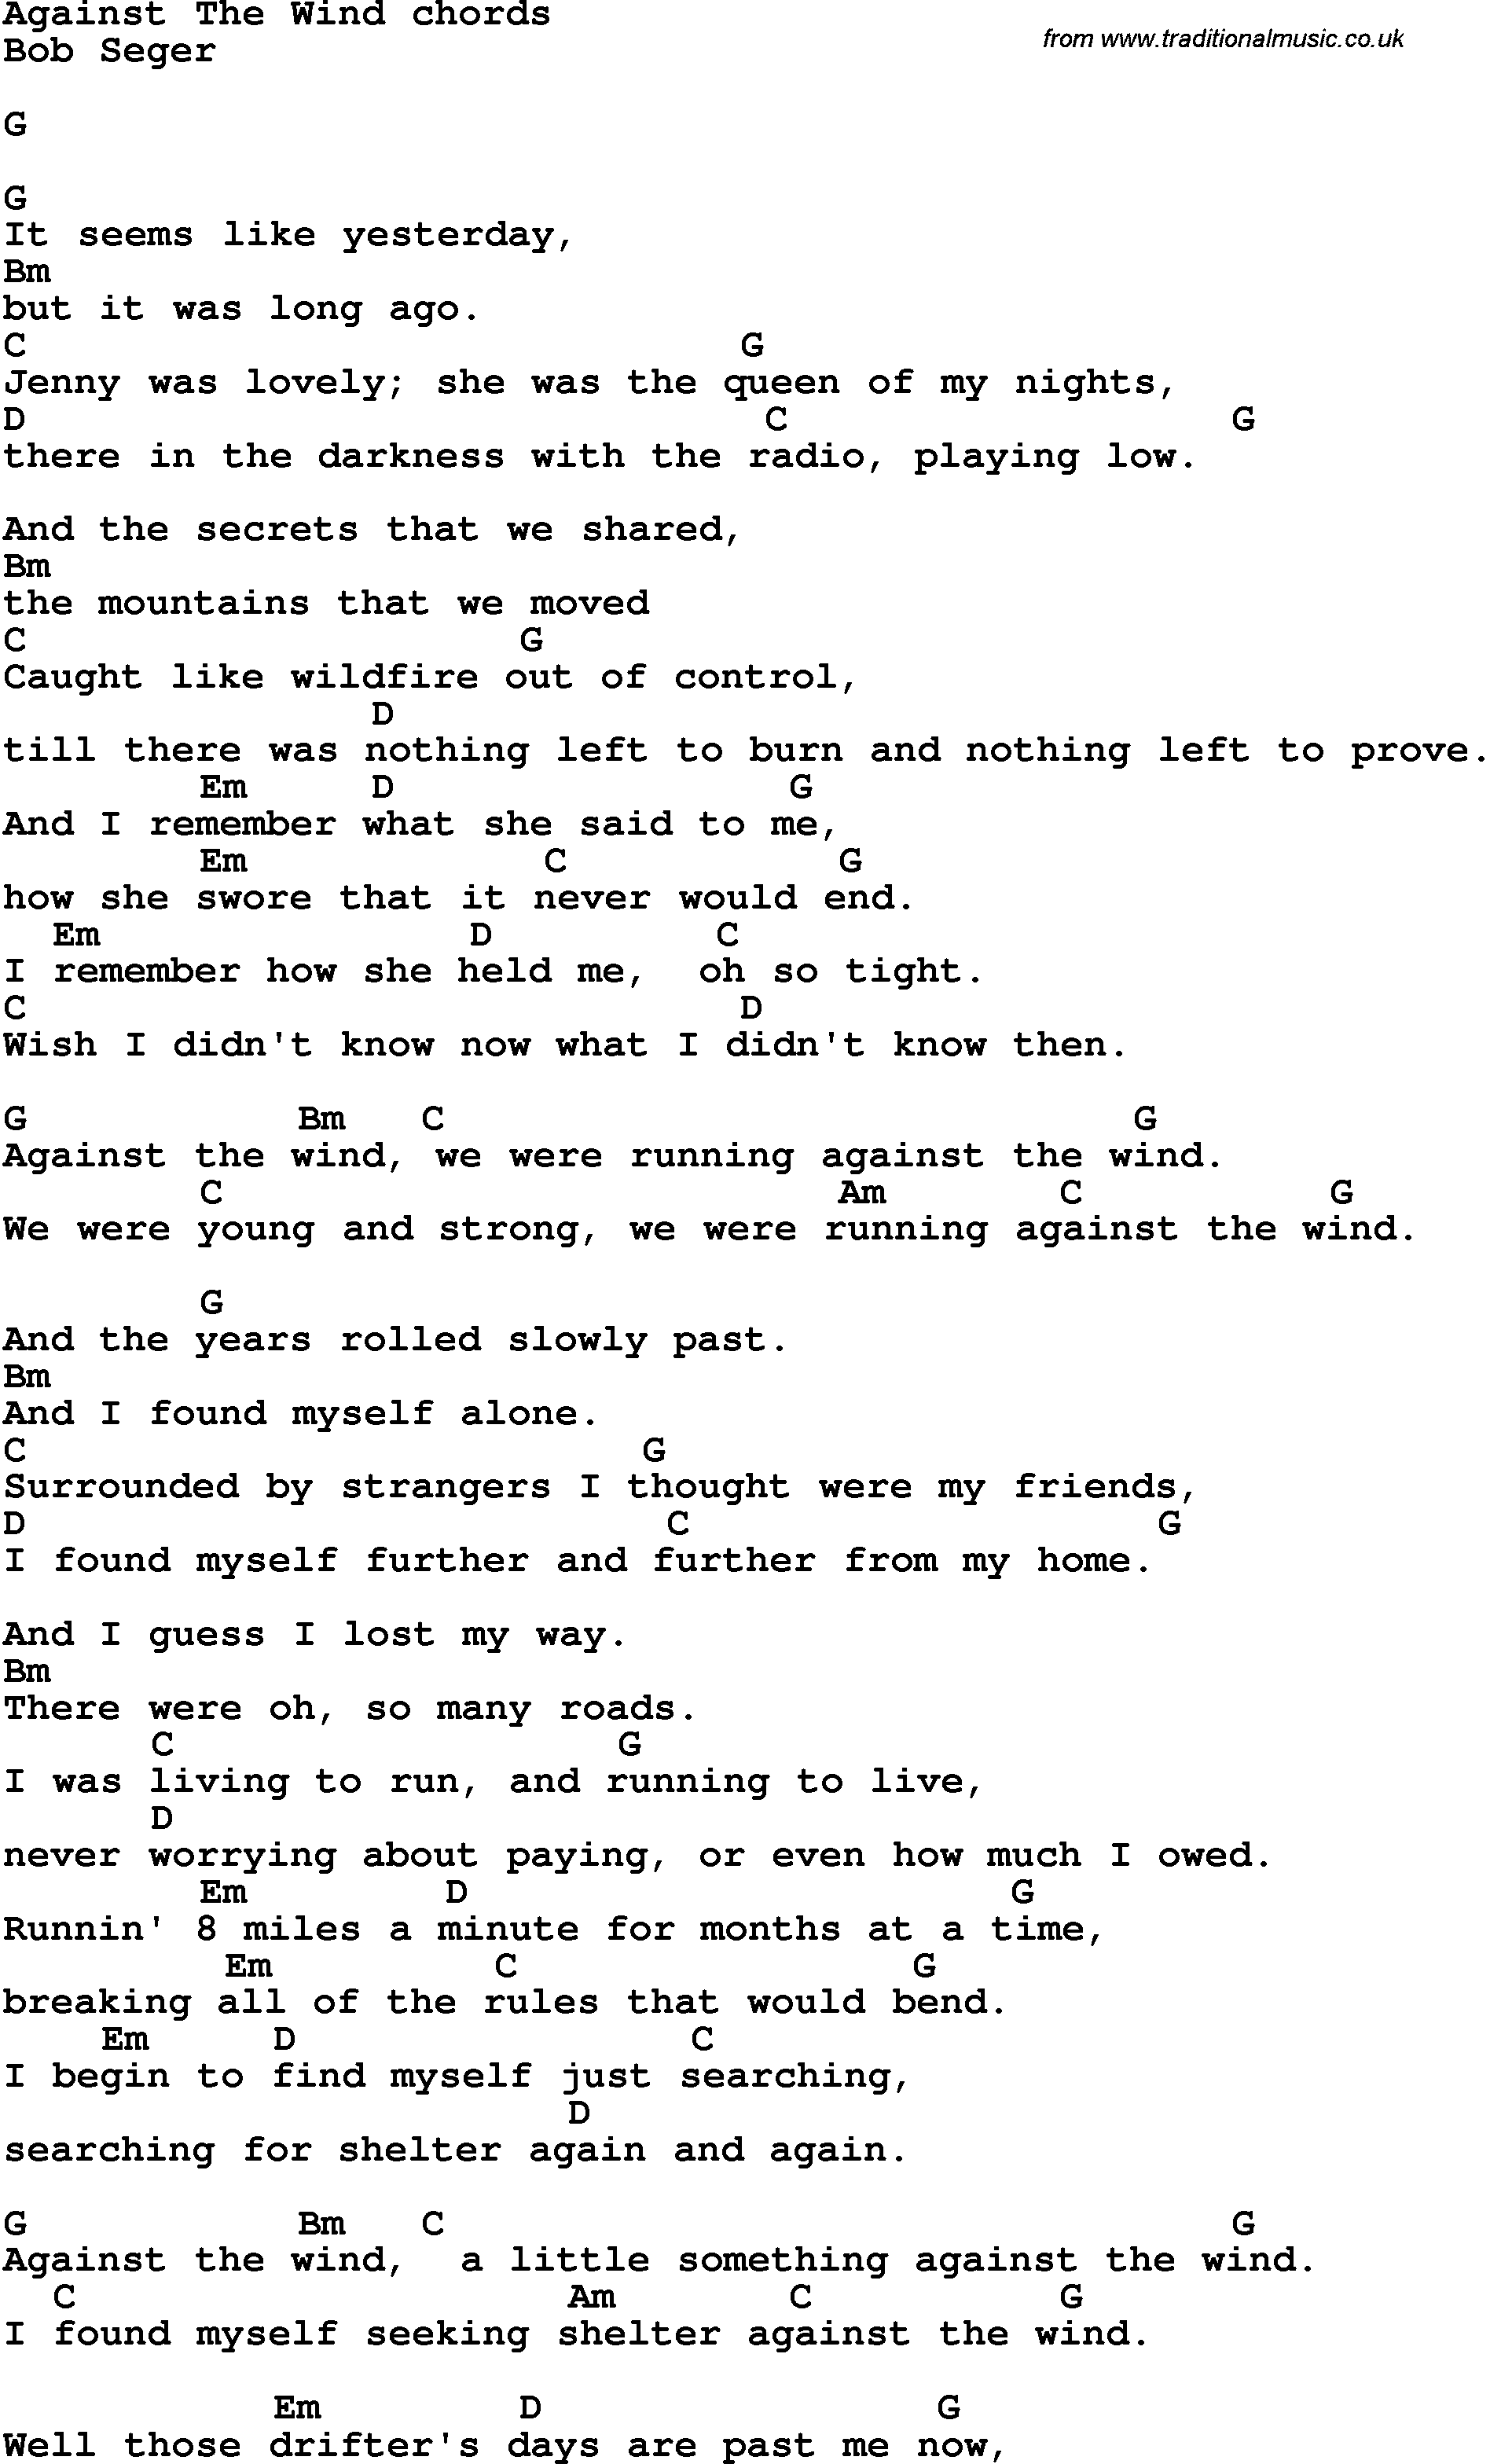 Song lyrics with guitar chords for against the wind learn guitar song lyrics with guitar chords for against the wind hexwebz Choice Image